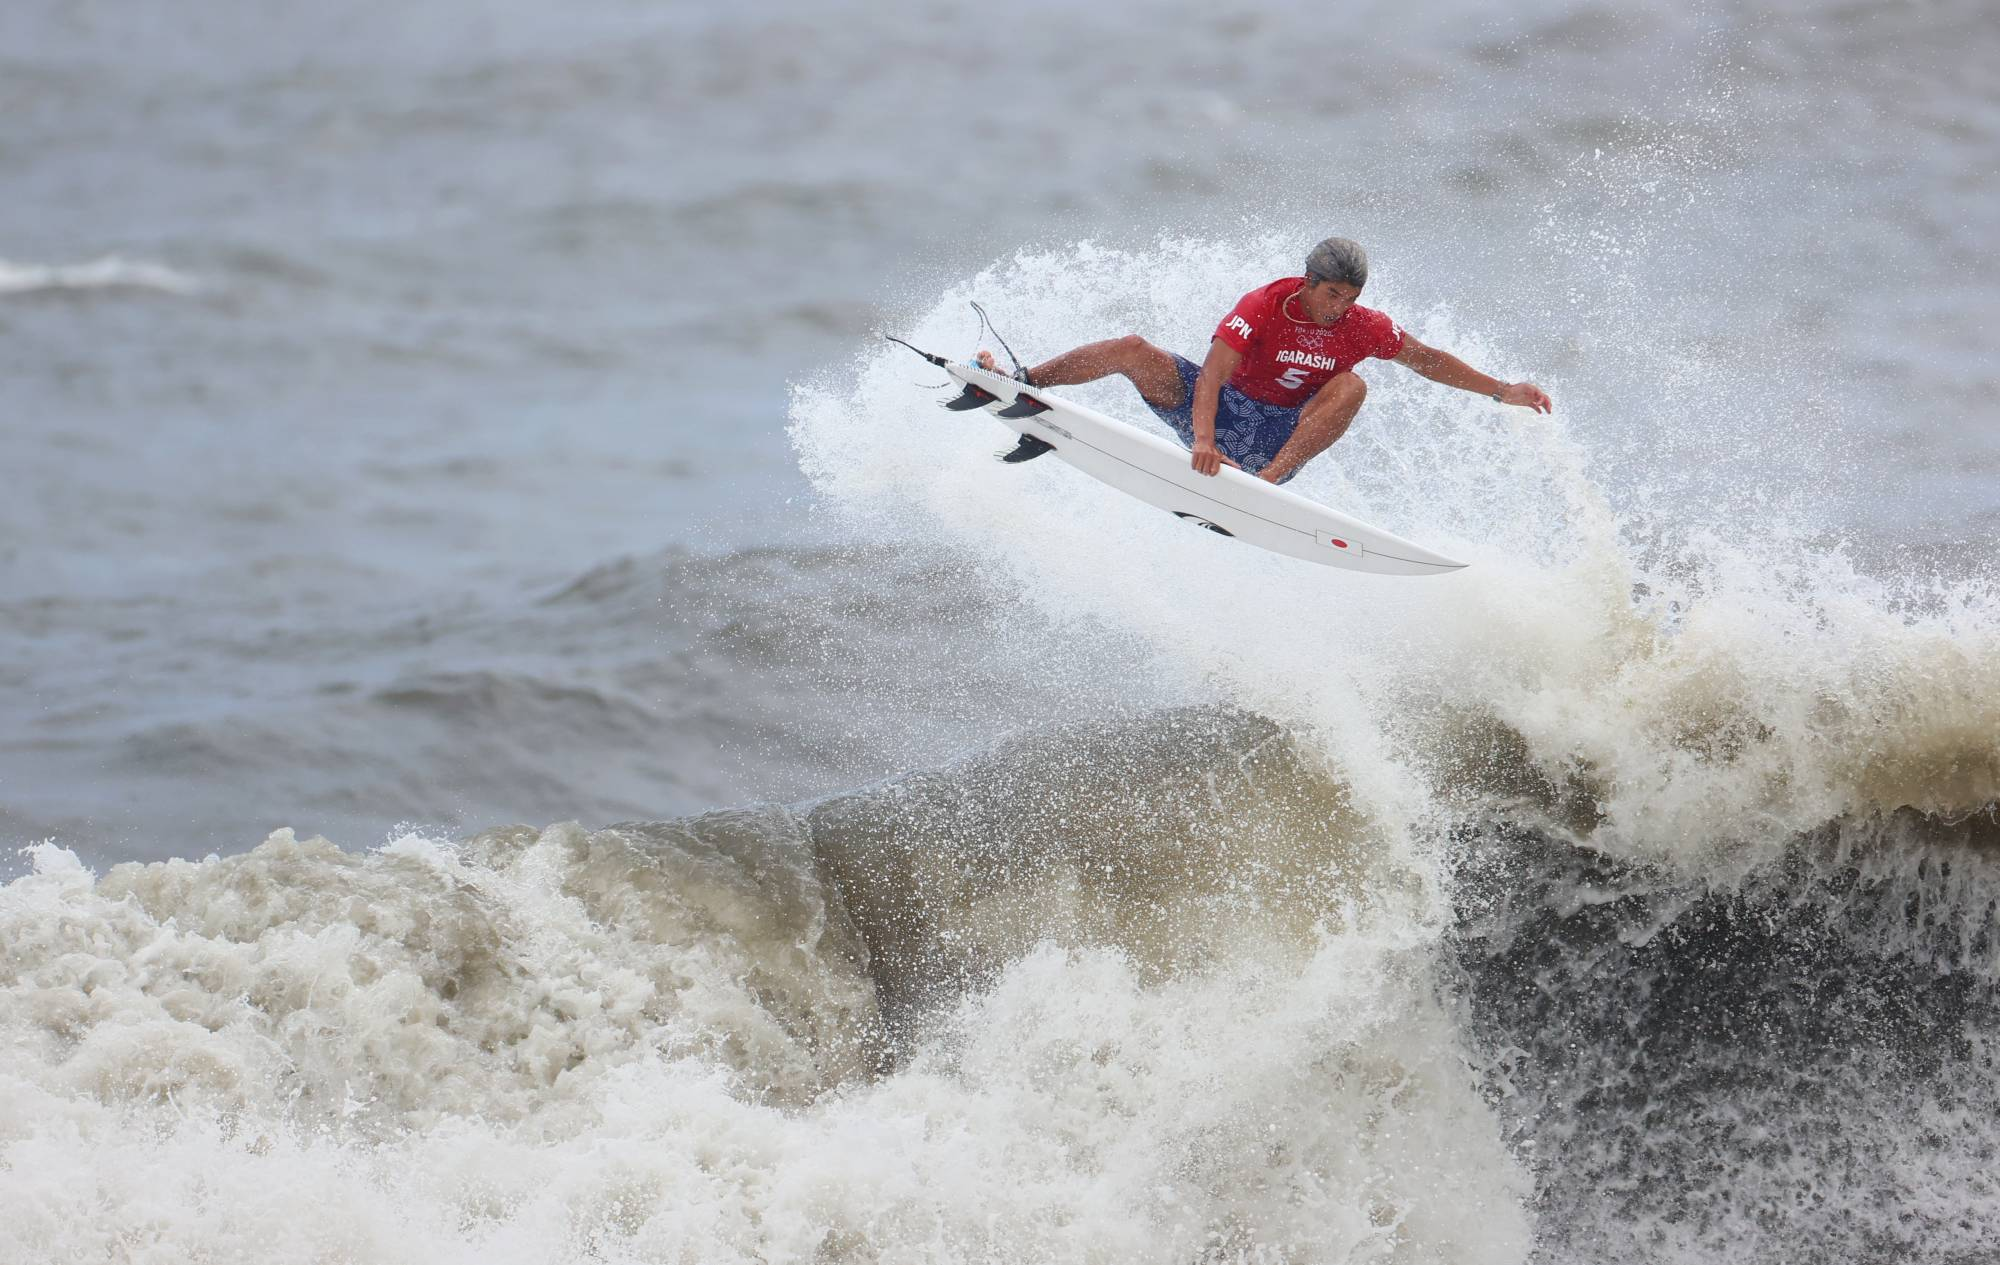 Japan's Kanoa Igarashi rode to the podium in the first-ever Olympic surfing competition Tuesday, securing a silver medal behind Brazil's Italo Ferreira. Japan's Amuro Tsuzuki took bronze in the women's competition. Reuters | REUTERS